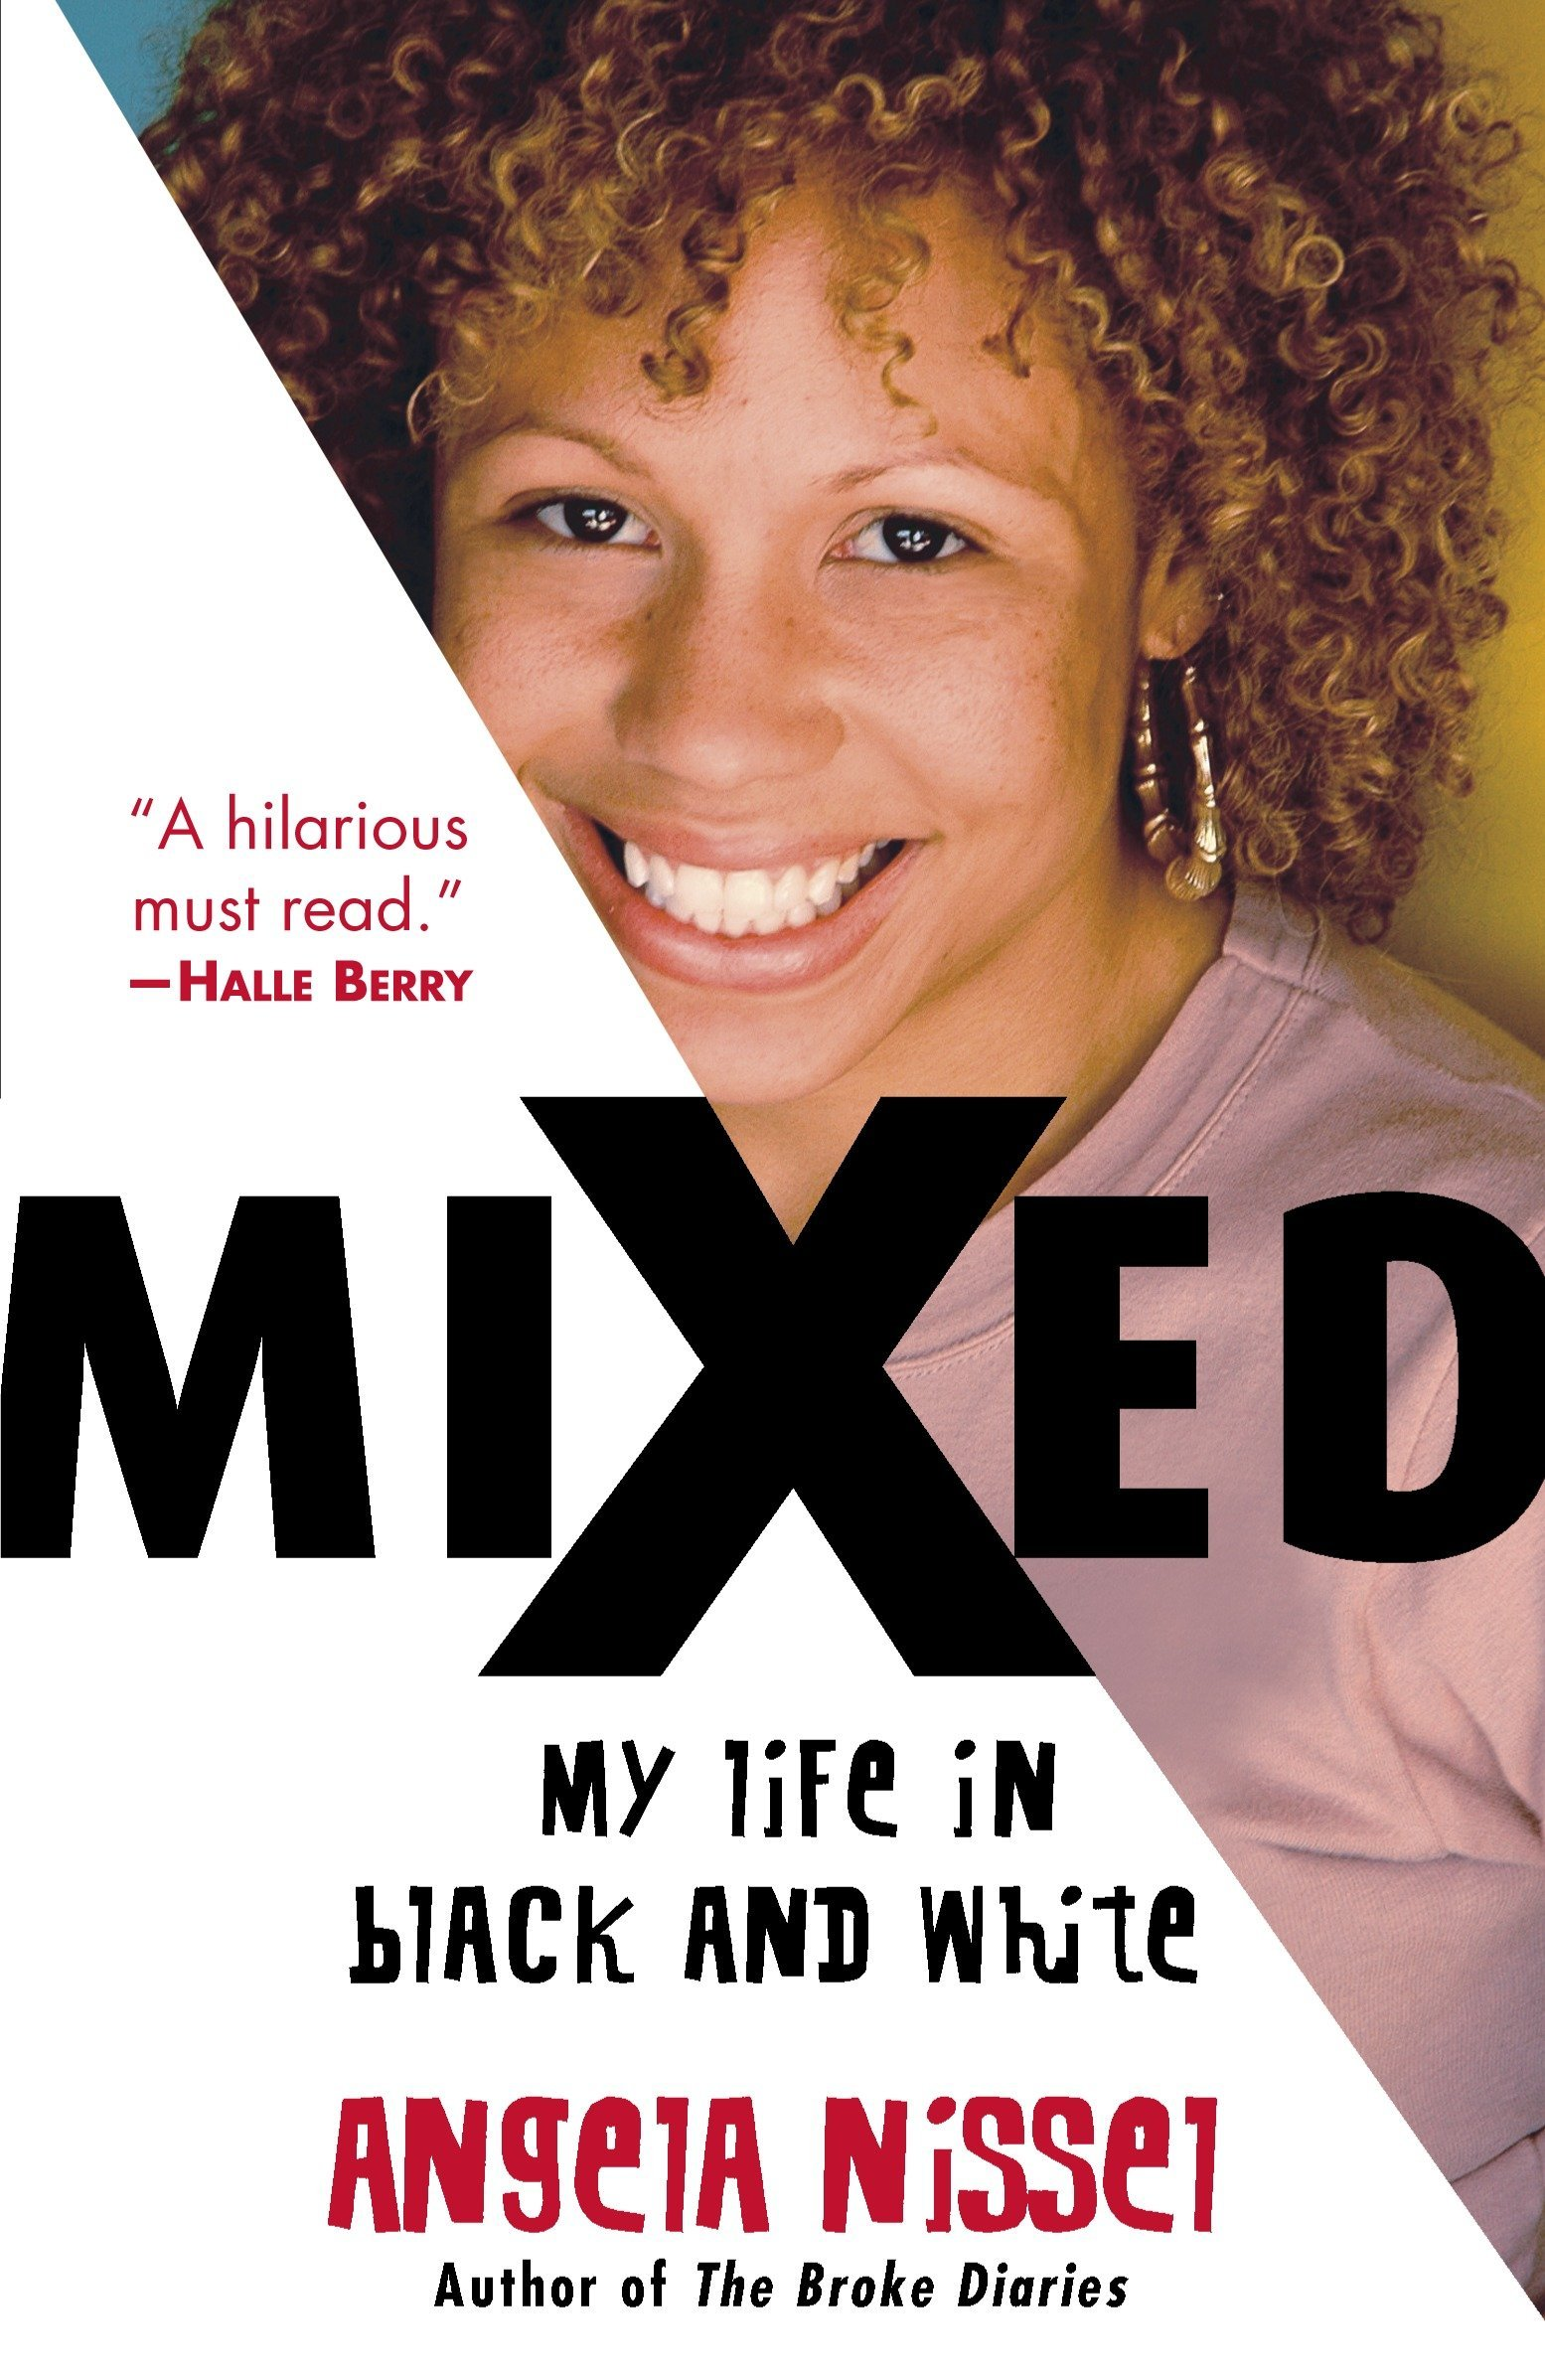 Hot biracial women big ass Mixed My Life In Black And White Nissel Angela 9780345481146 Amazon Com Books